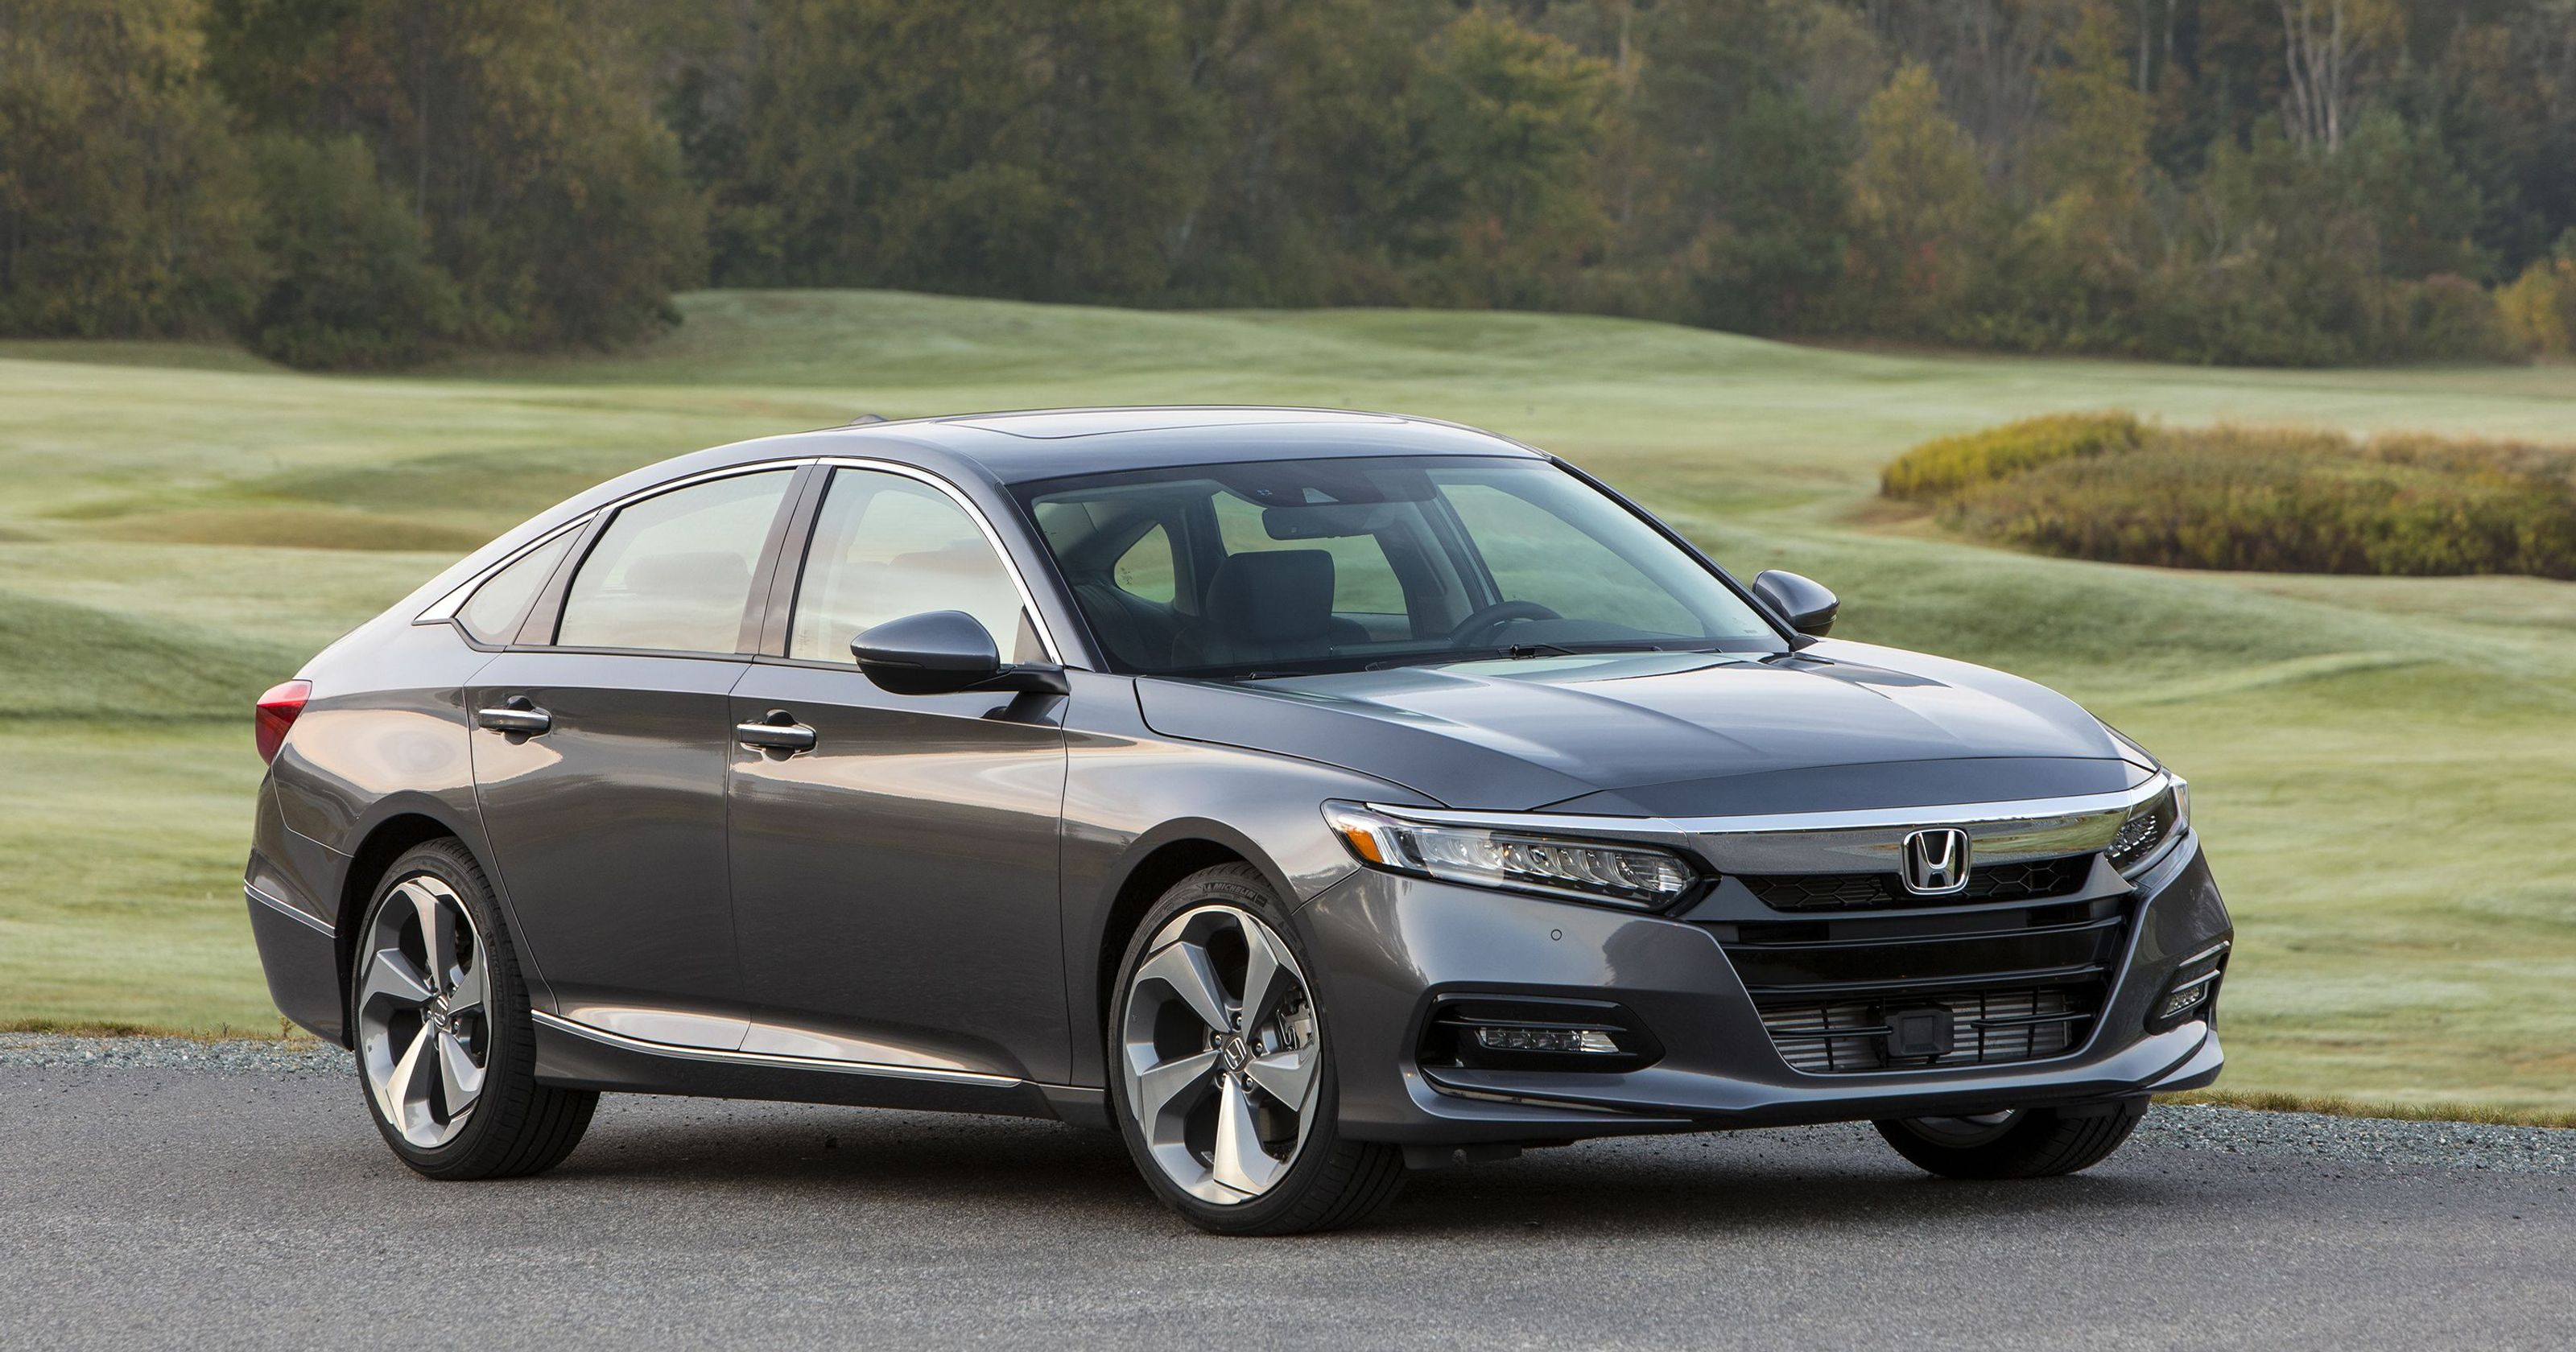 51 The Best 2020 Honda Accord Hybrid Overview